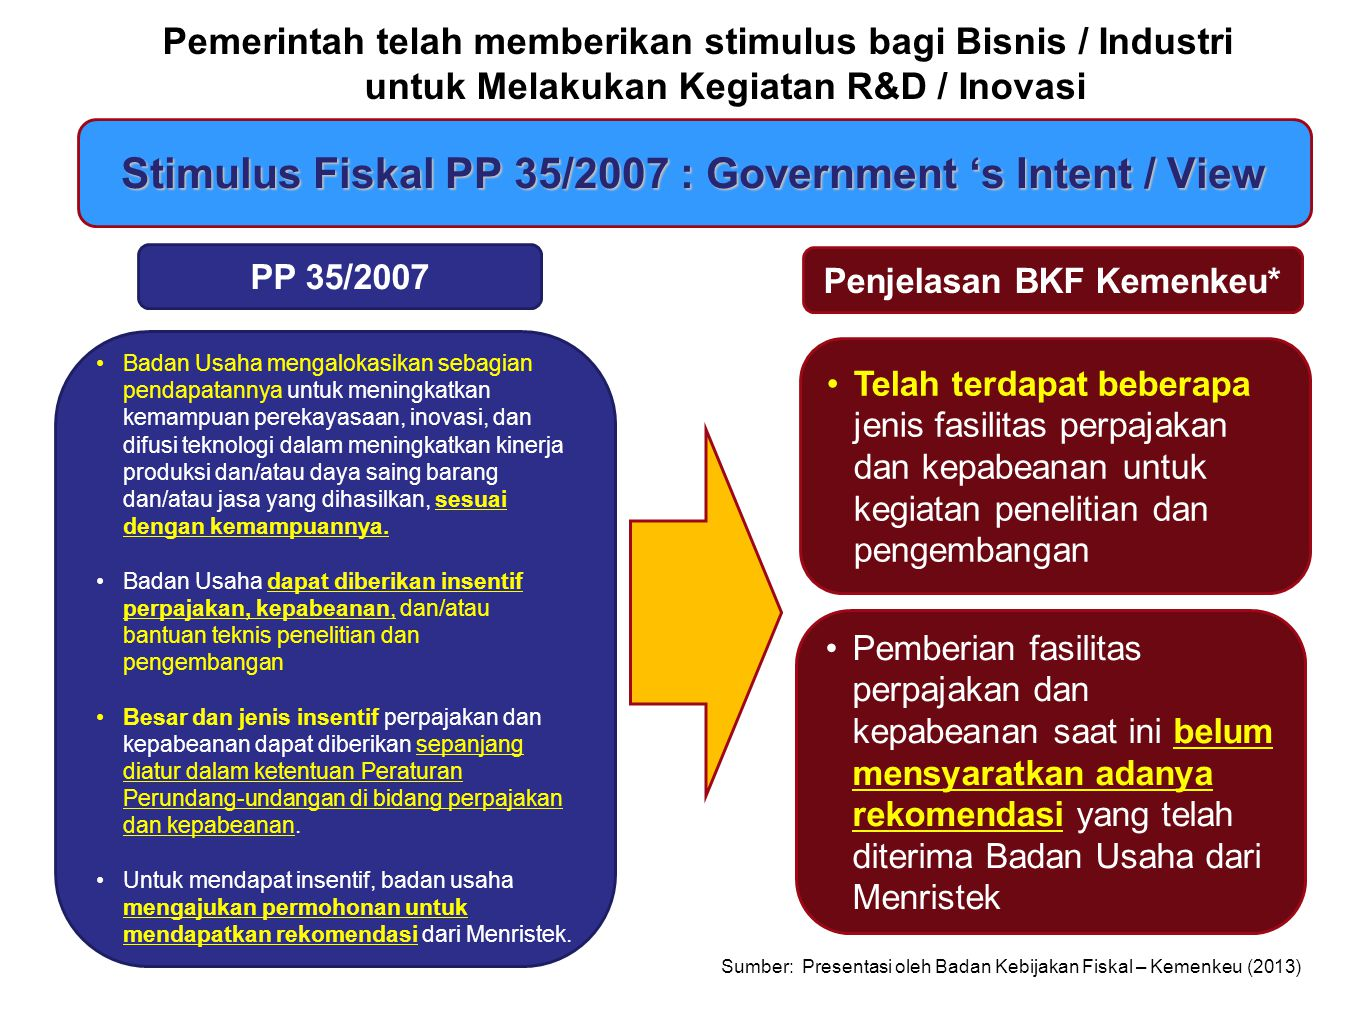 Stimulus Fiskal PP 35/2007 : Government 's Intent / View